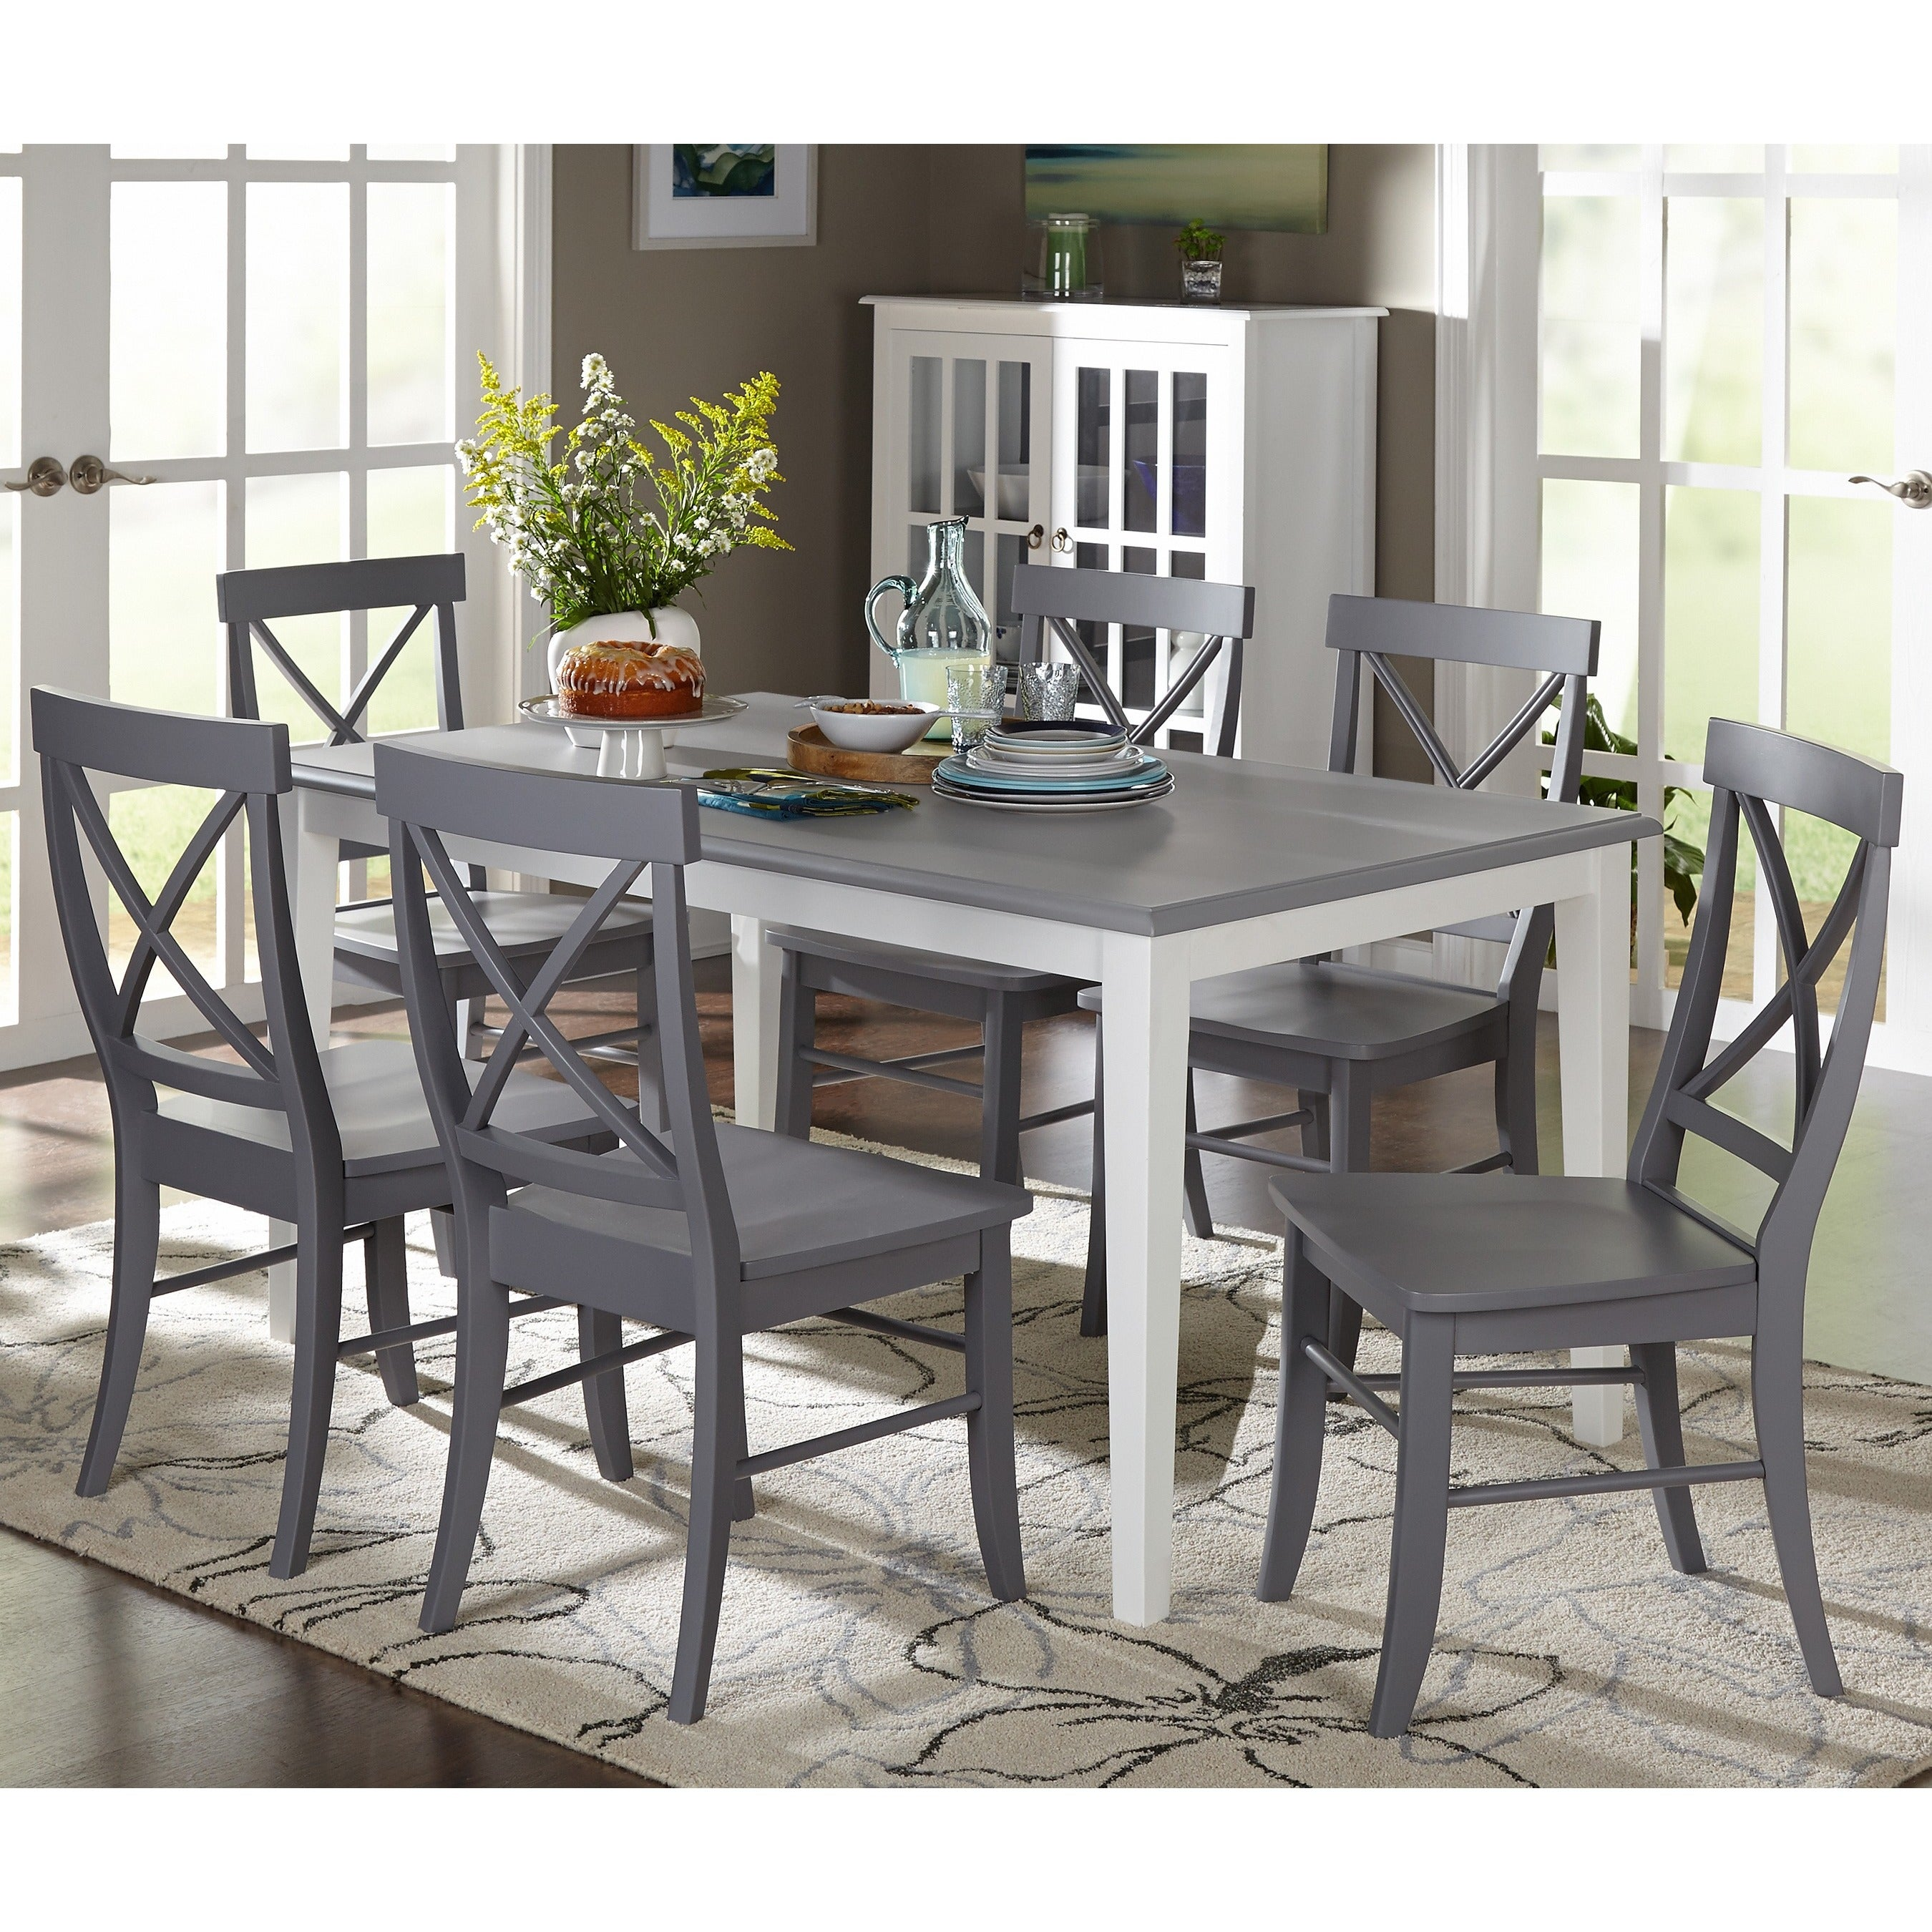 Lovely Simple Living 7 Piece Helena Dining Set